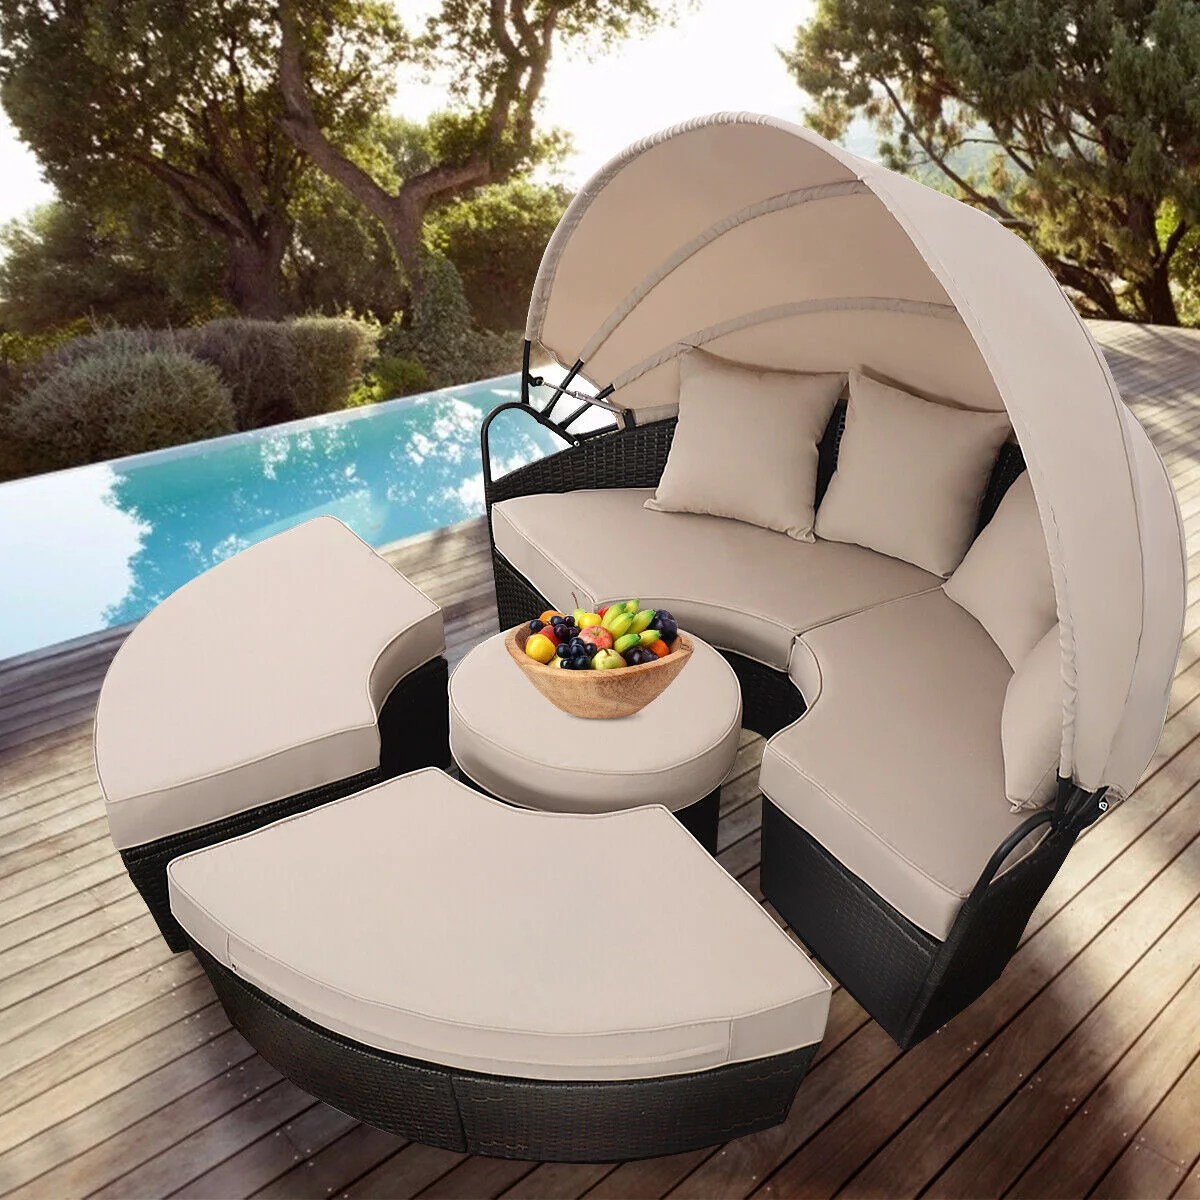 costway outdoor mix brown rattan patio sofa furniture round retractable canopy daybed walmart com